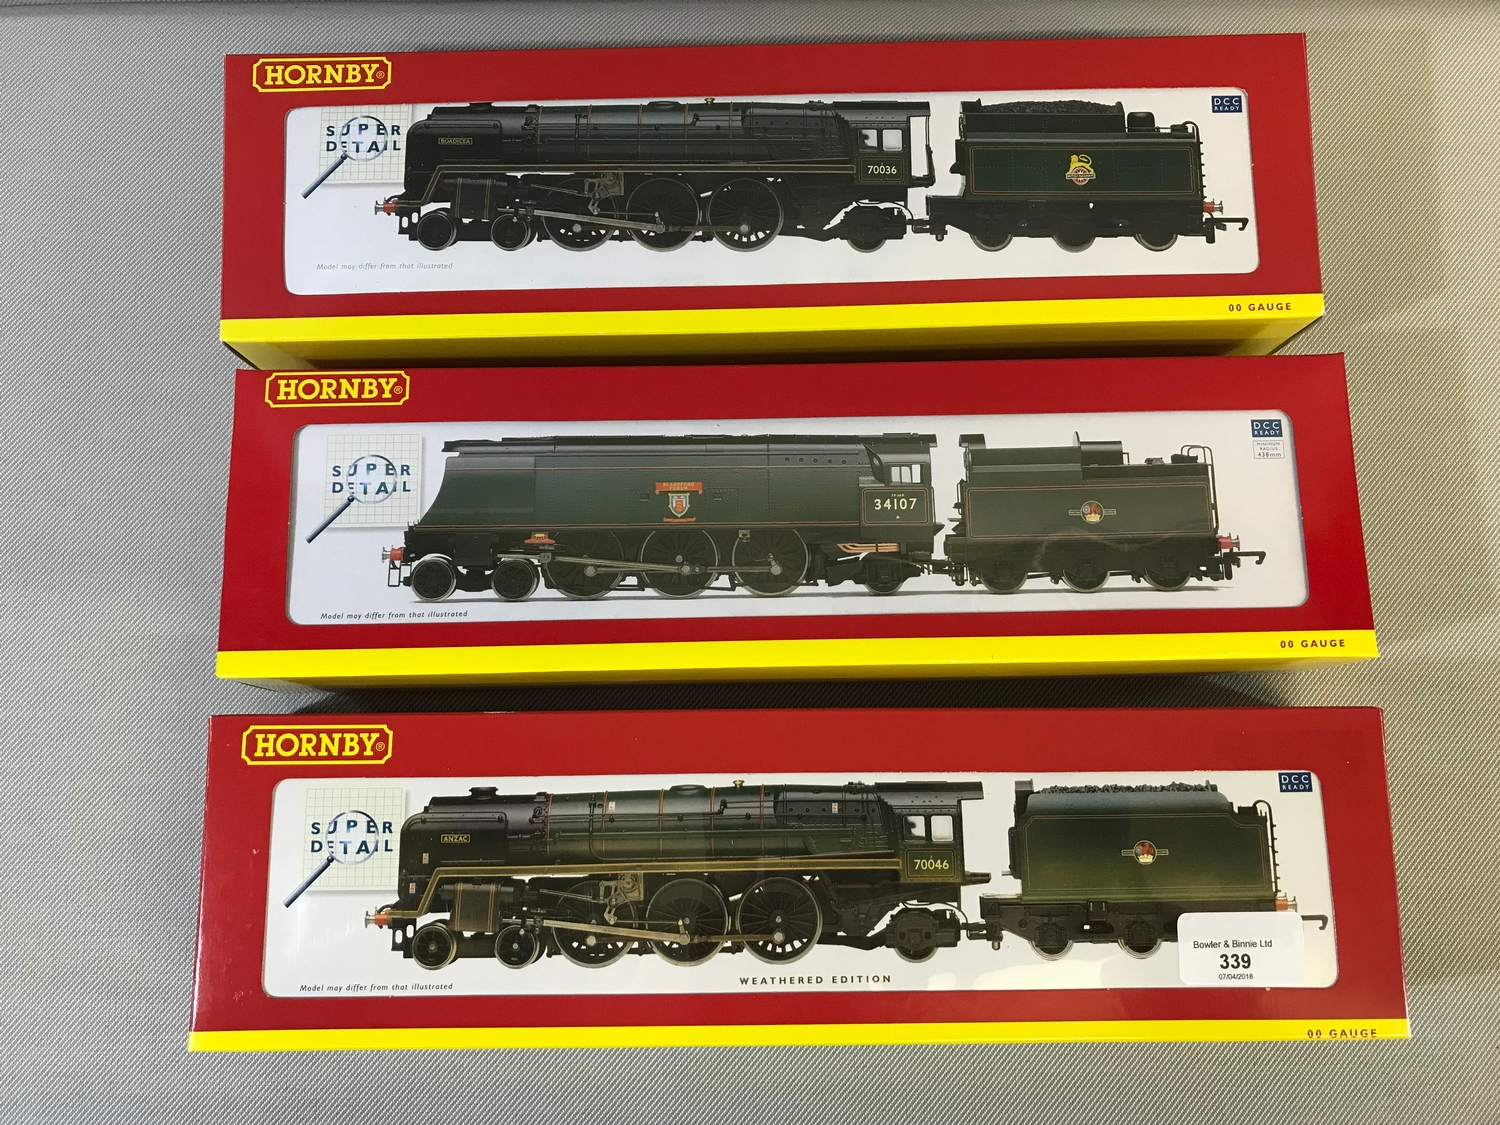 Hornby 0 Guage Evident Effect O Scale